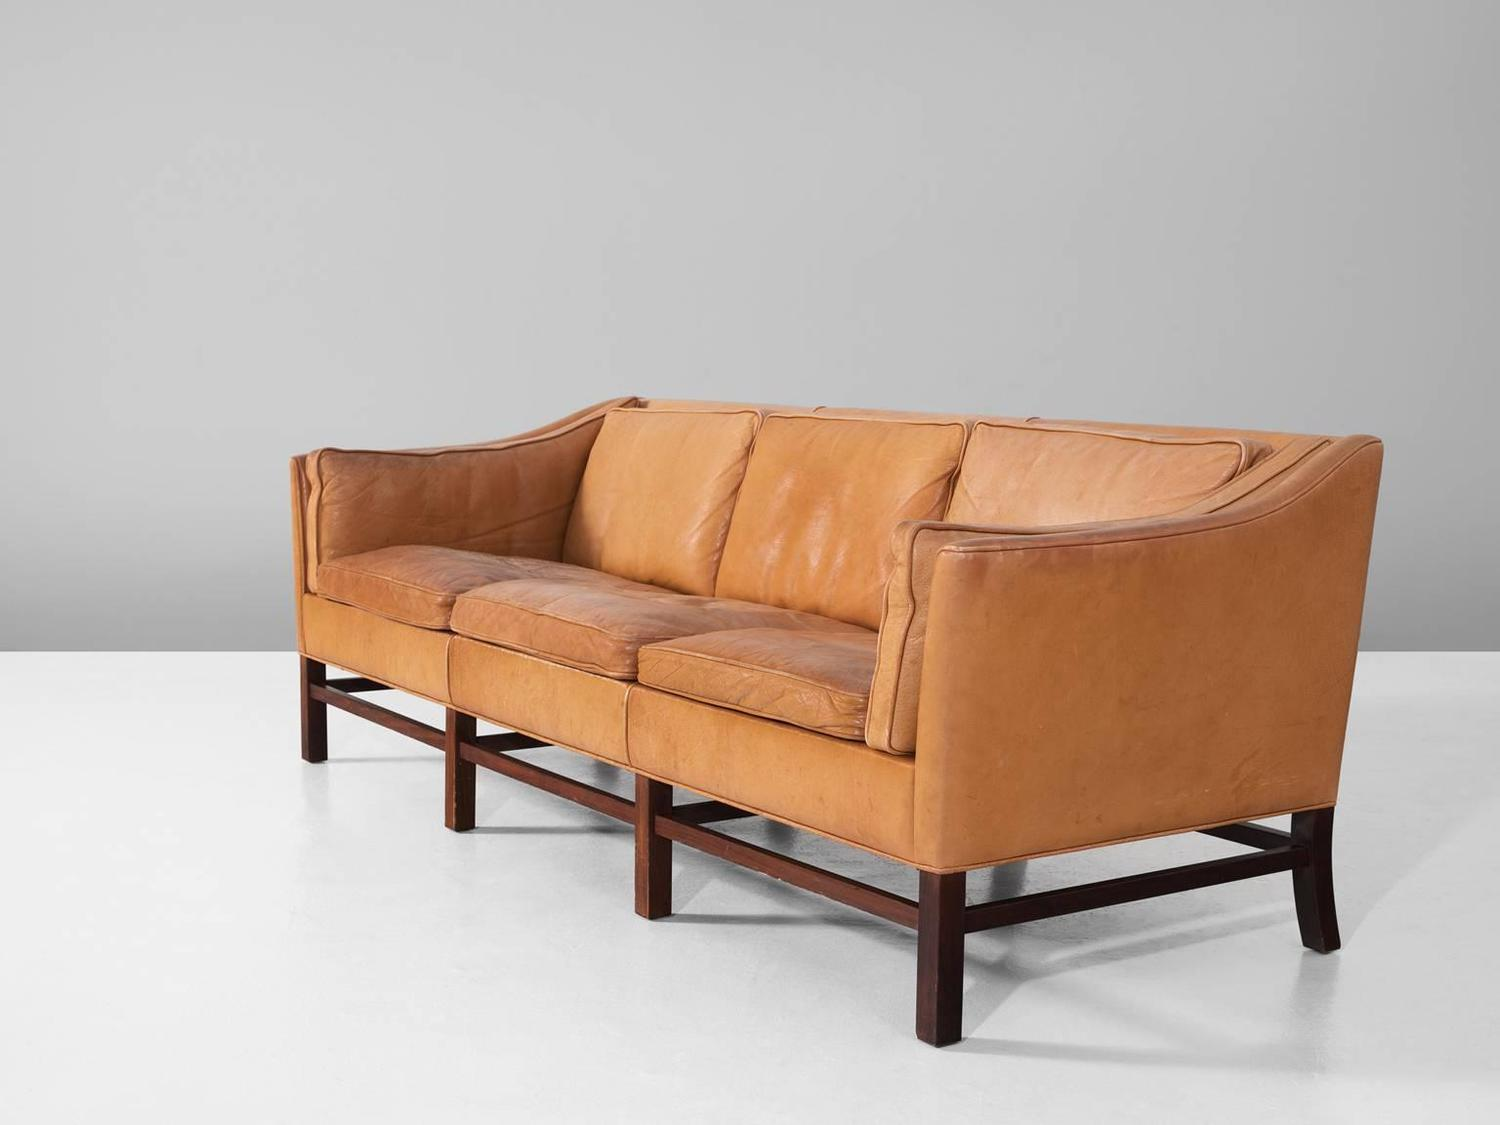 Scandinavian Modern Sofa In Natural Leather For Sale At